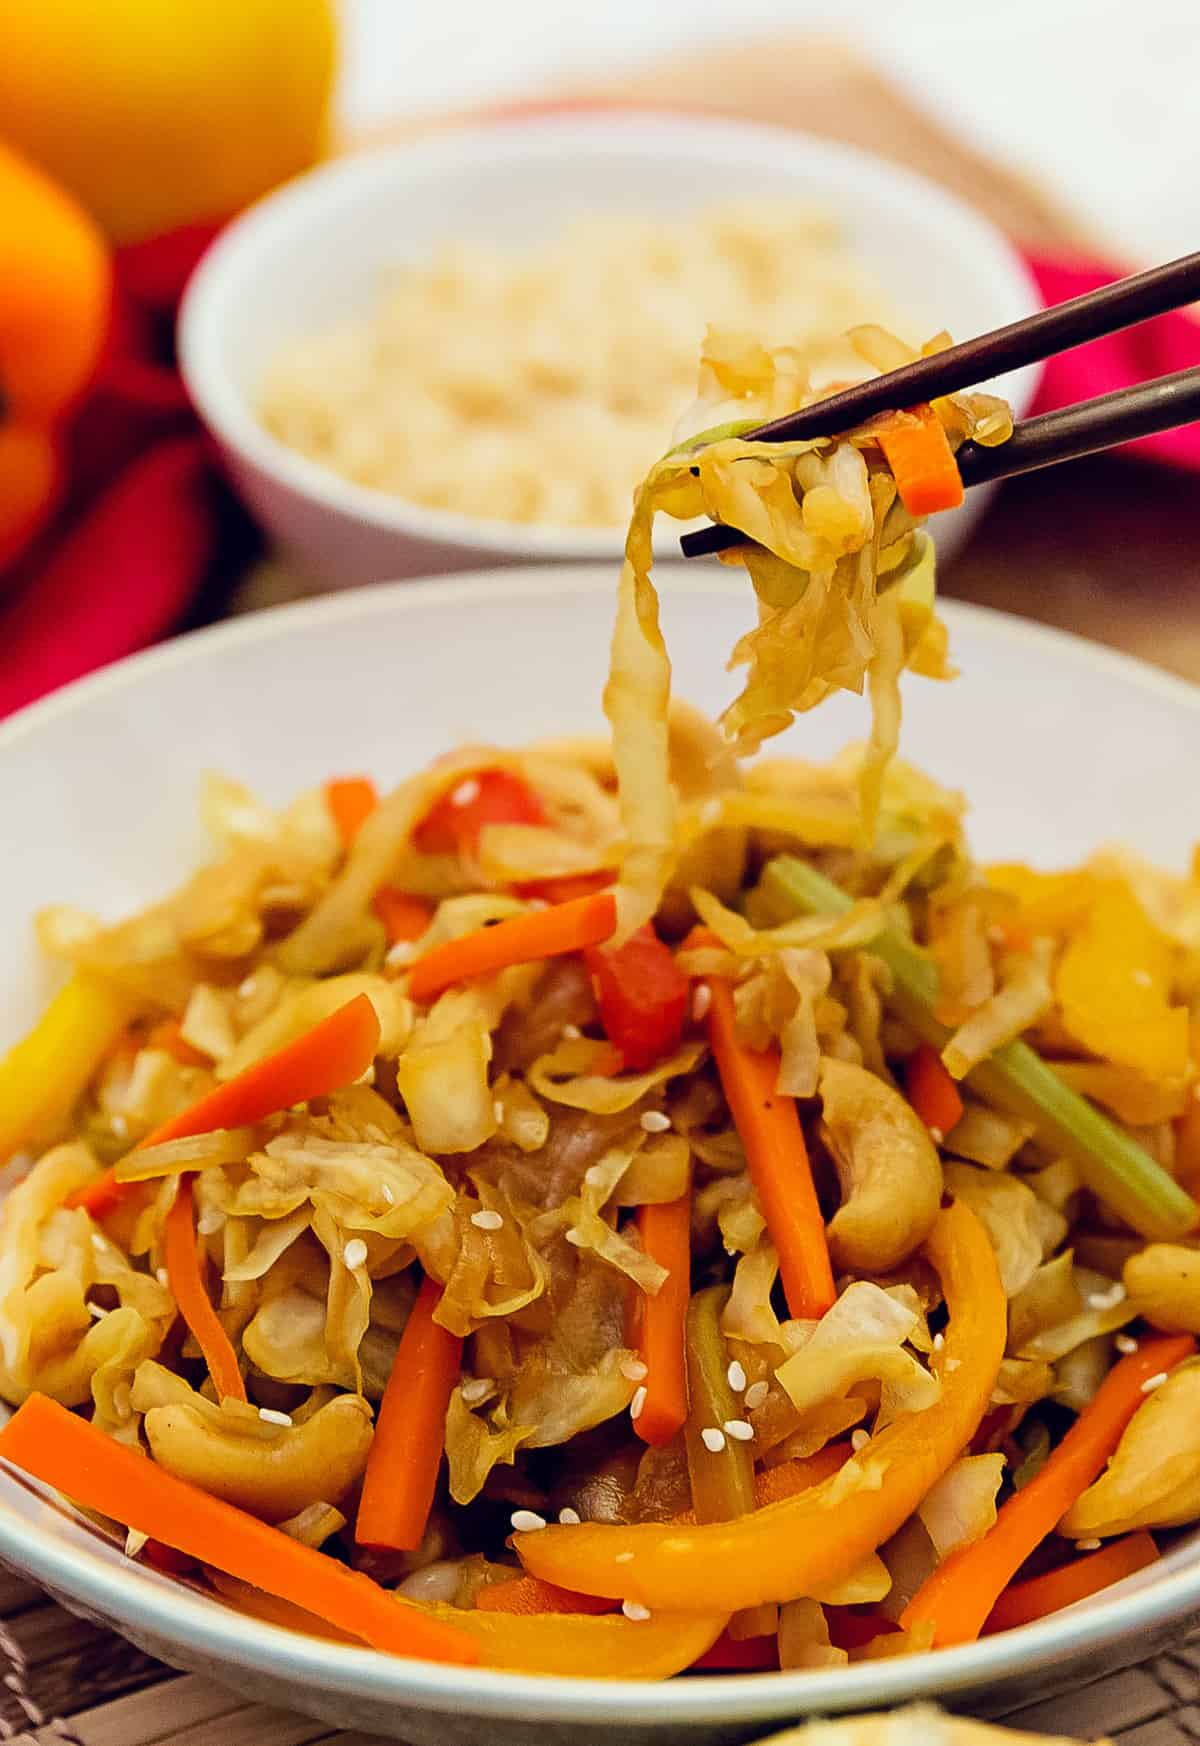 Cashew cabbage stir fry monkey and me kitchen adventures the best cashew cabbage stir fry whole food plant based healthy recipes recipes forumfinder Image collections